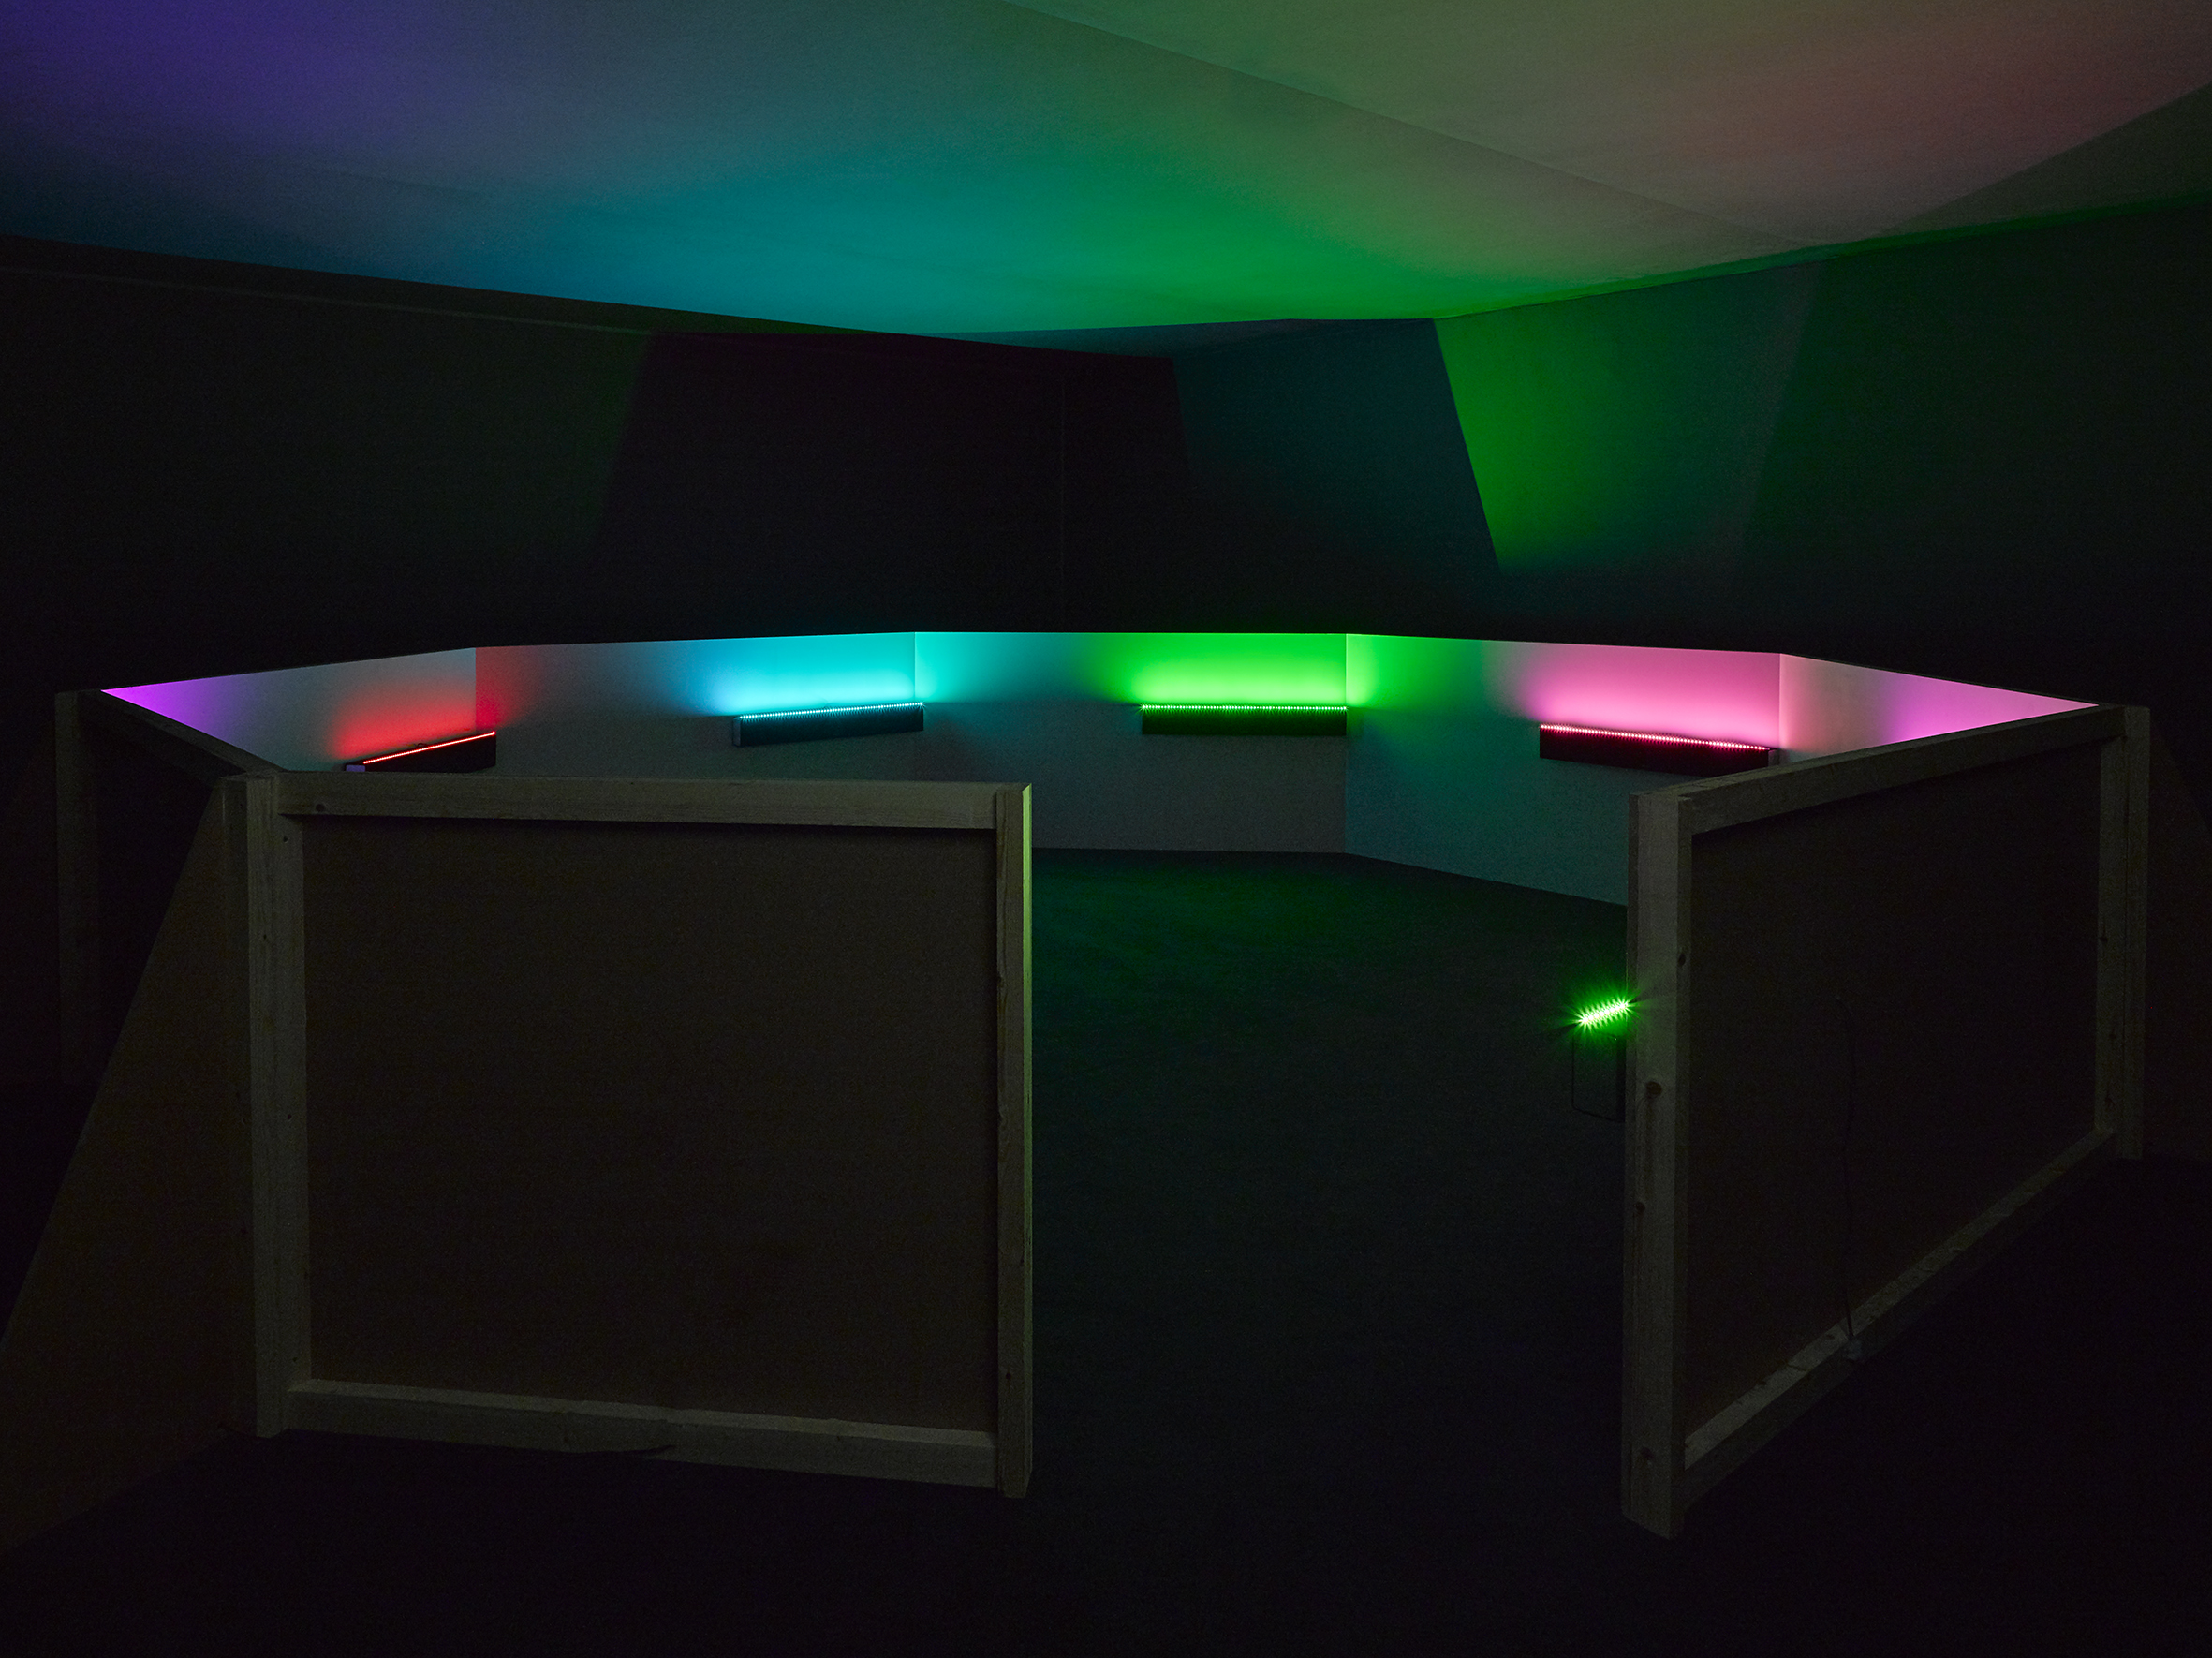 A Chamber for Horwitz, Sonakinatography Transcriptions in Surround Sound, 2015